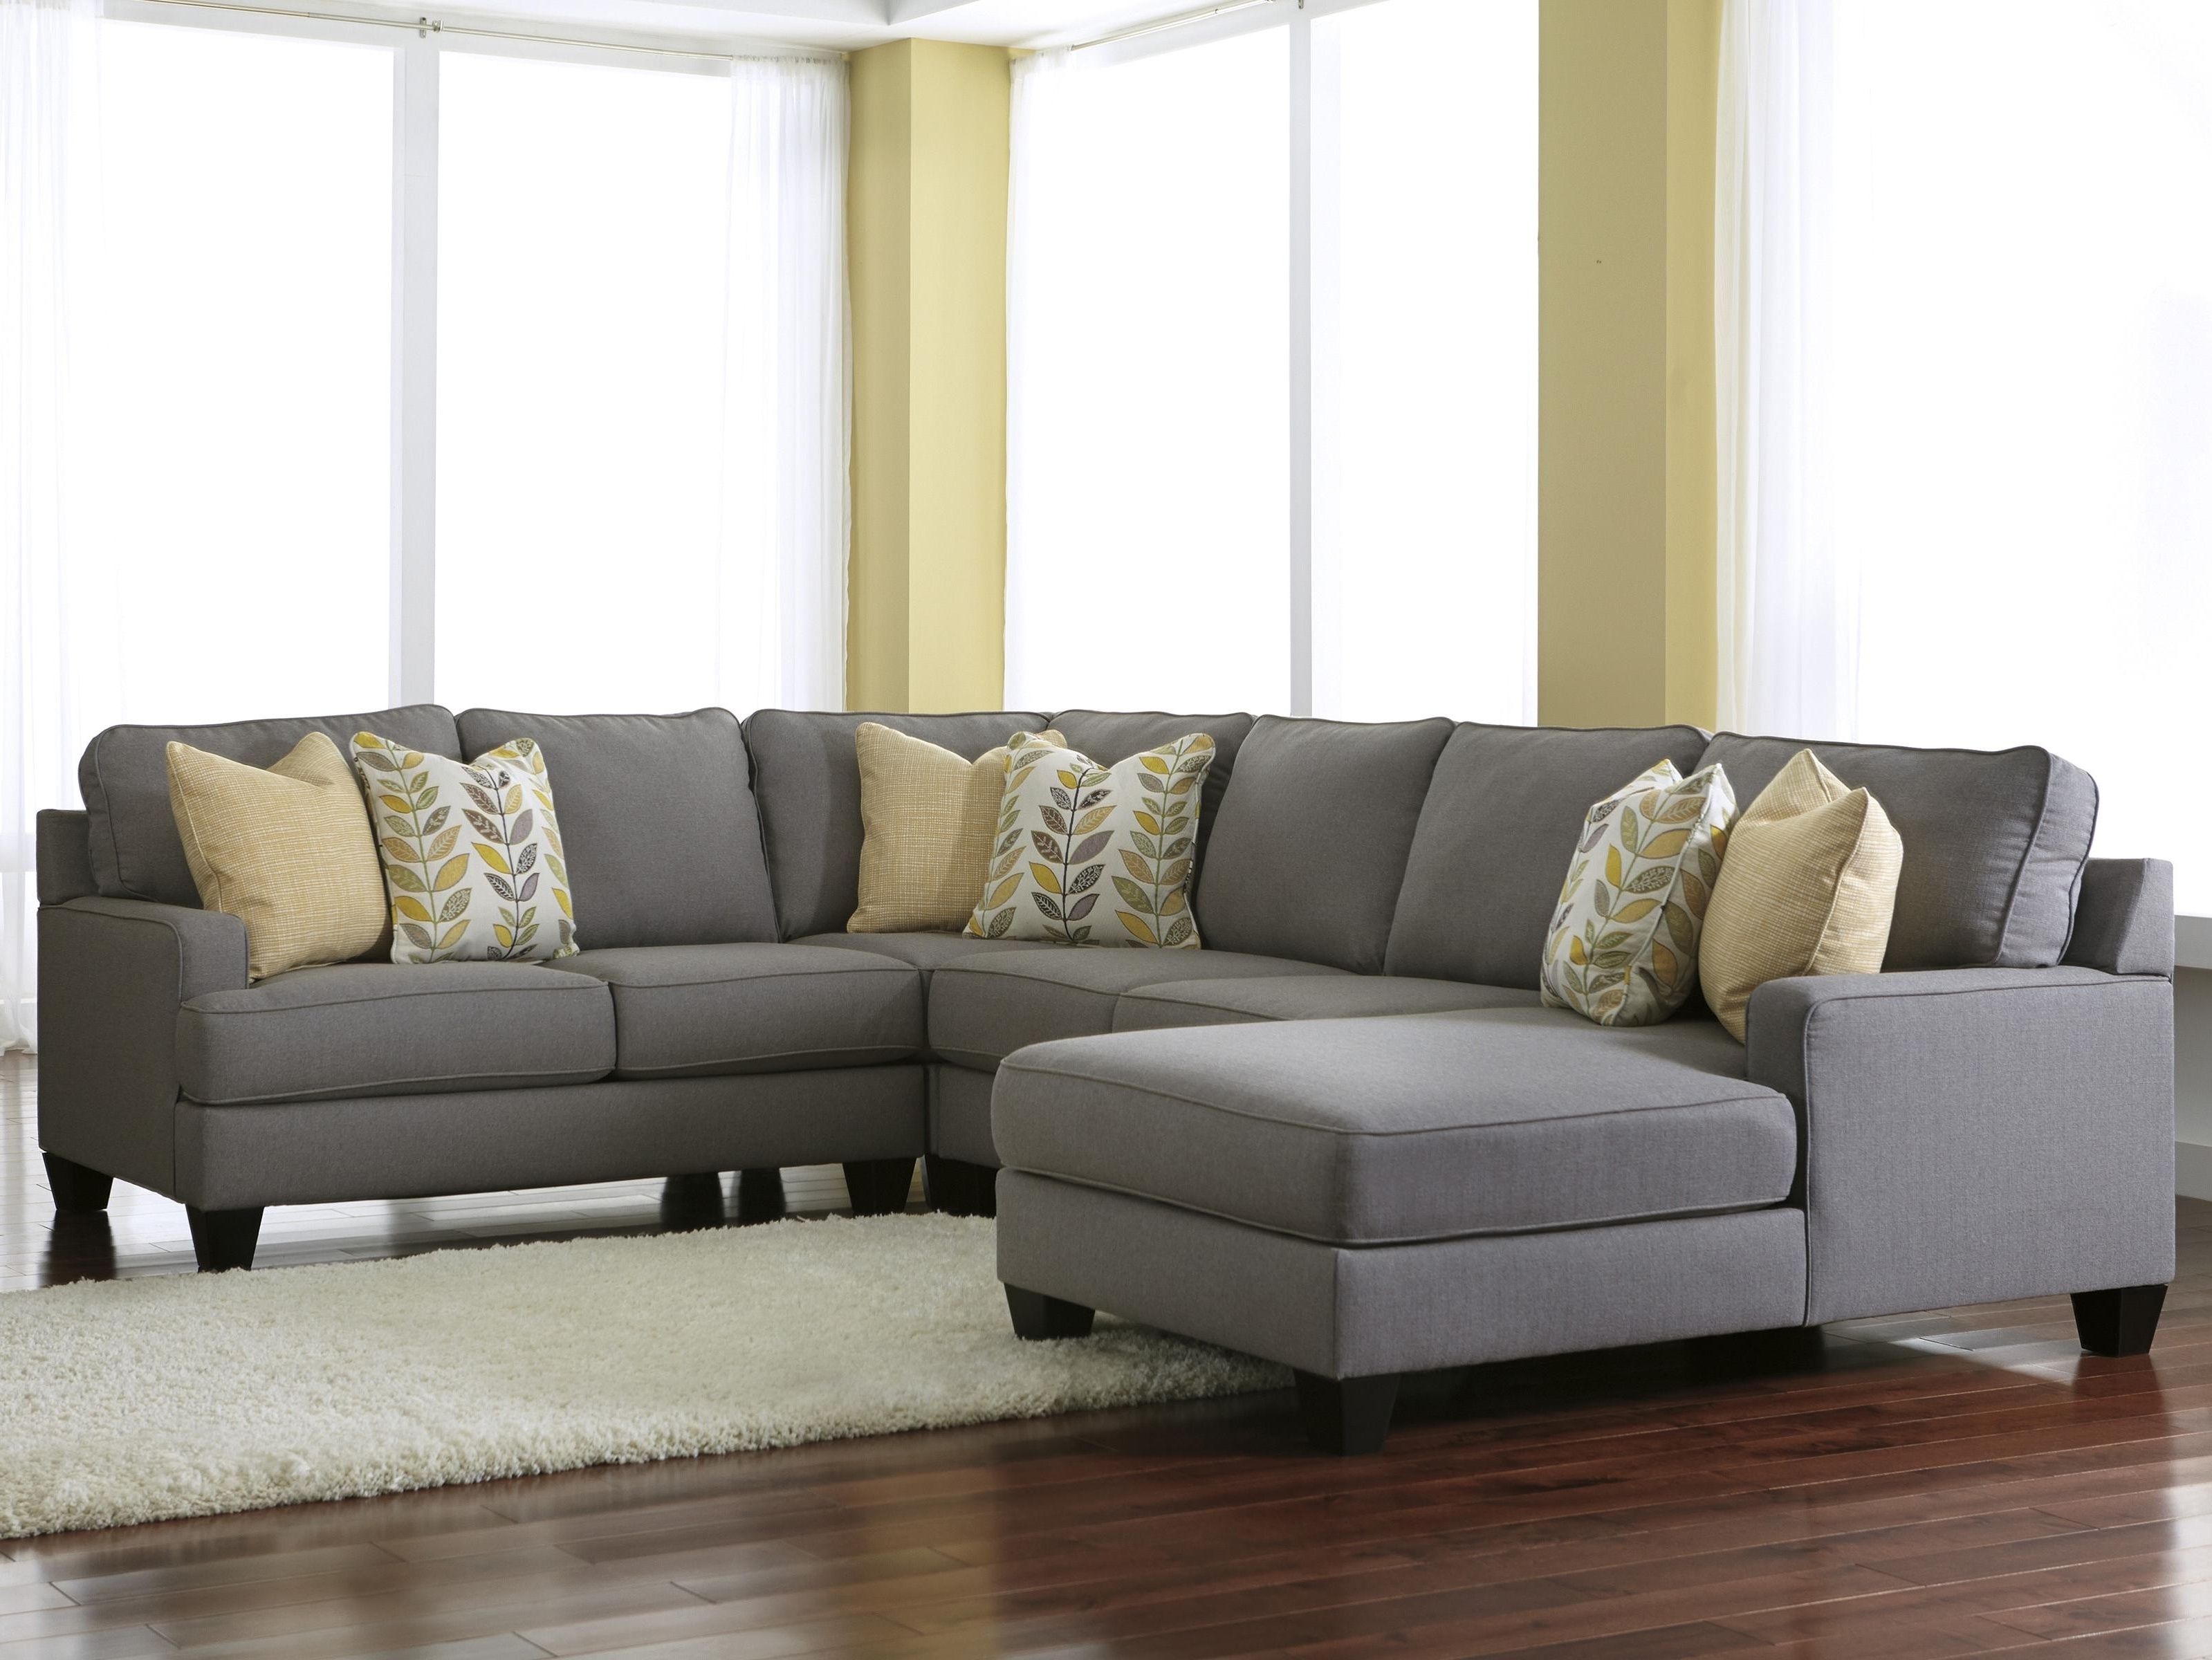 Modern 4 Piece Sectional Sofa With Left Chaise & Reversible Seat Regarding Trendy 2 Seat Sectional Sofas (View 8 of 20)